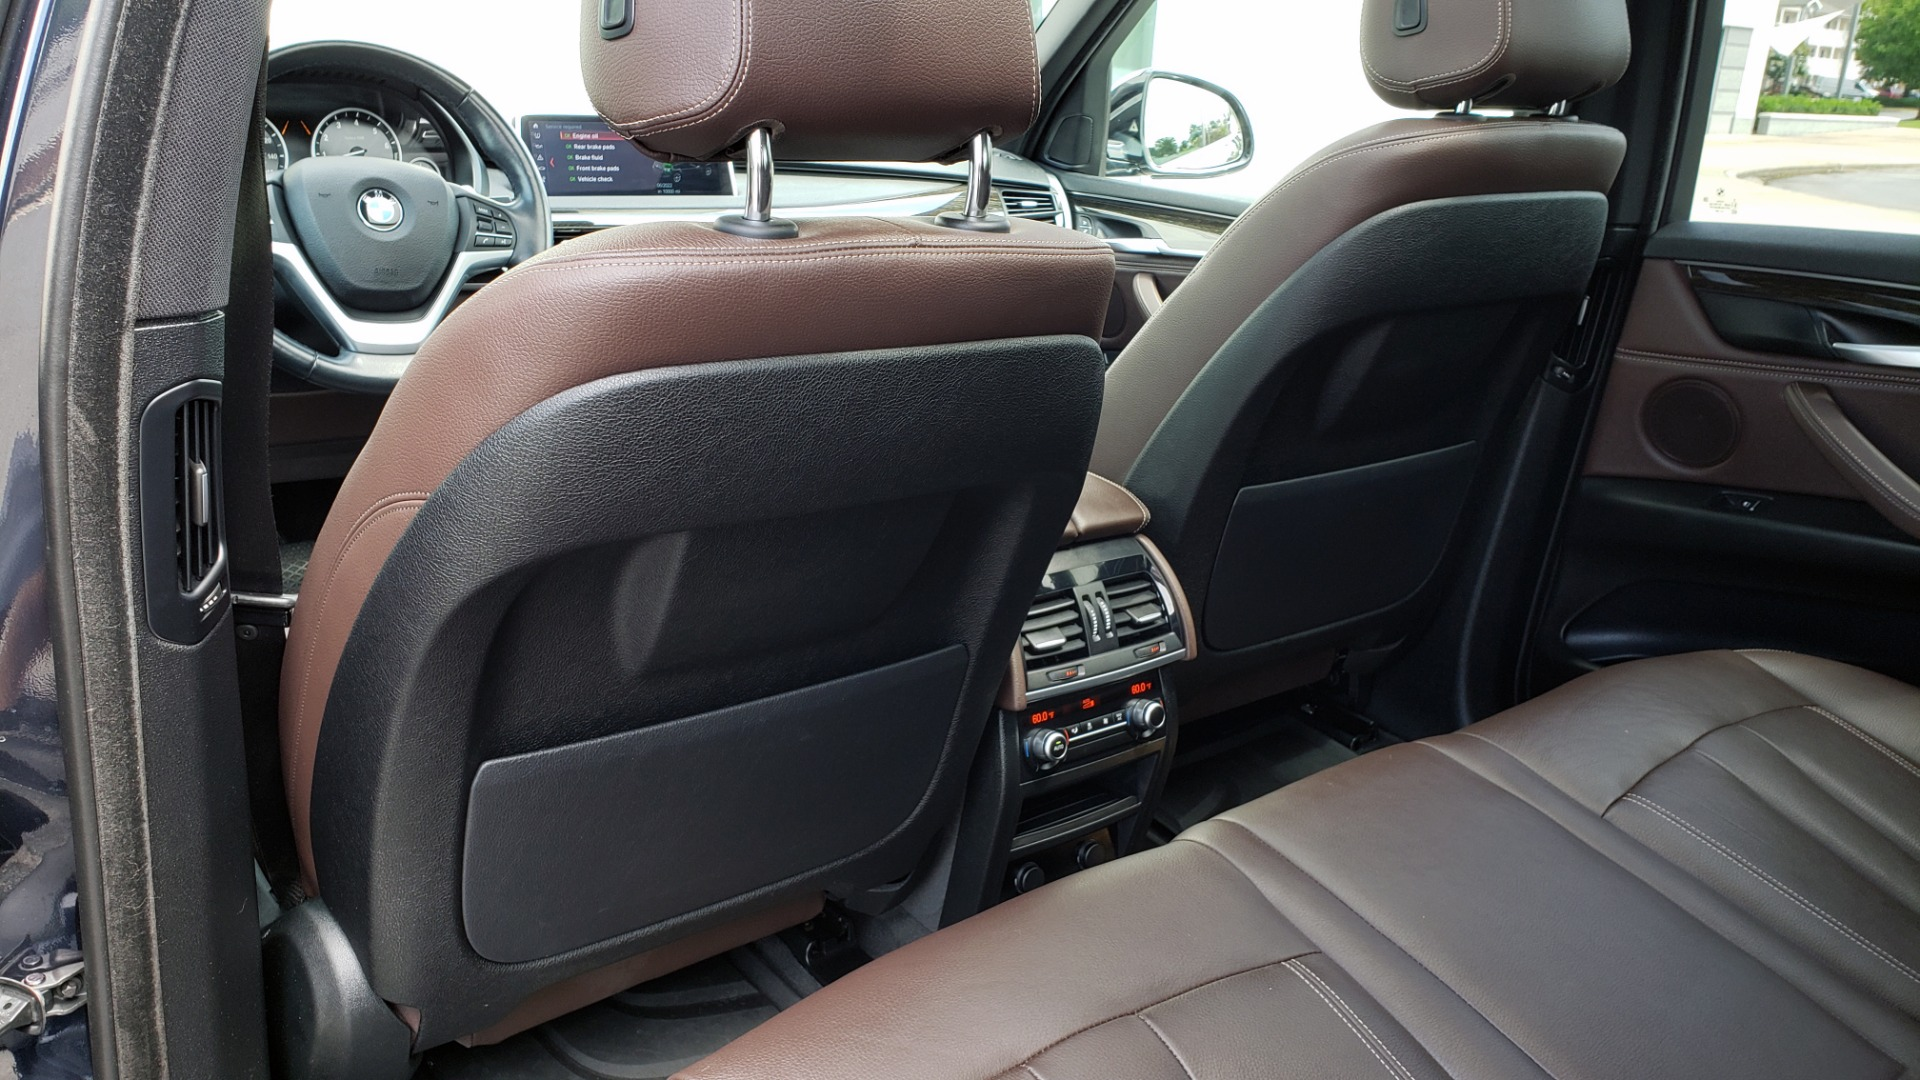 Used 2018 BMW X5 XDRIVE35I PREMIUM / LUXURY / DRVR ASST / HUD / LANE WARNING / REARVIEW for sale $43,695 at Formula Imports in Charlotte NC 28227 68